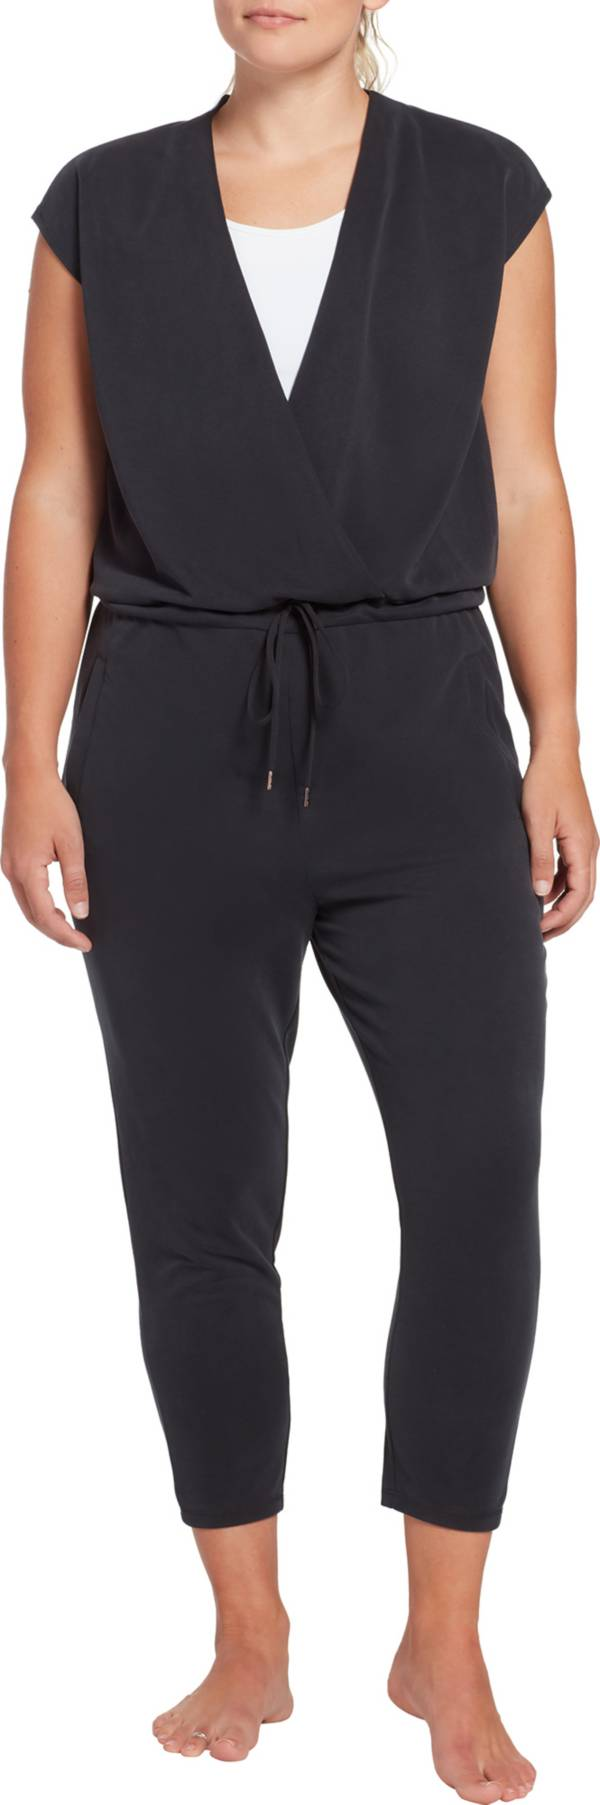 CALIA by Carrie Underwood Women's Journey Jumpsuit product image